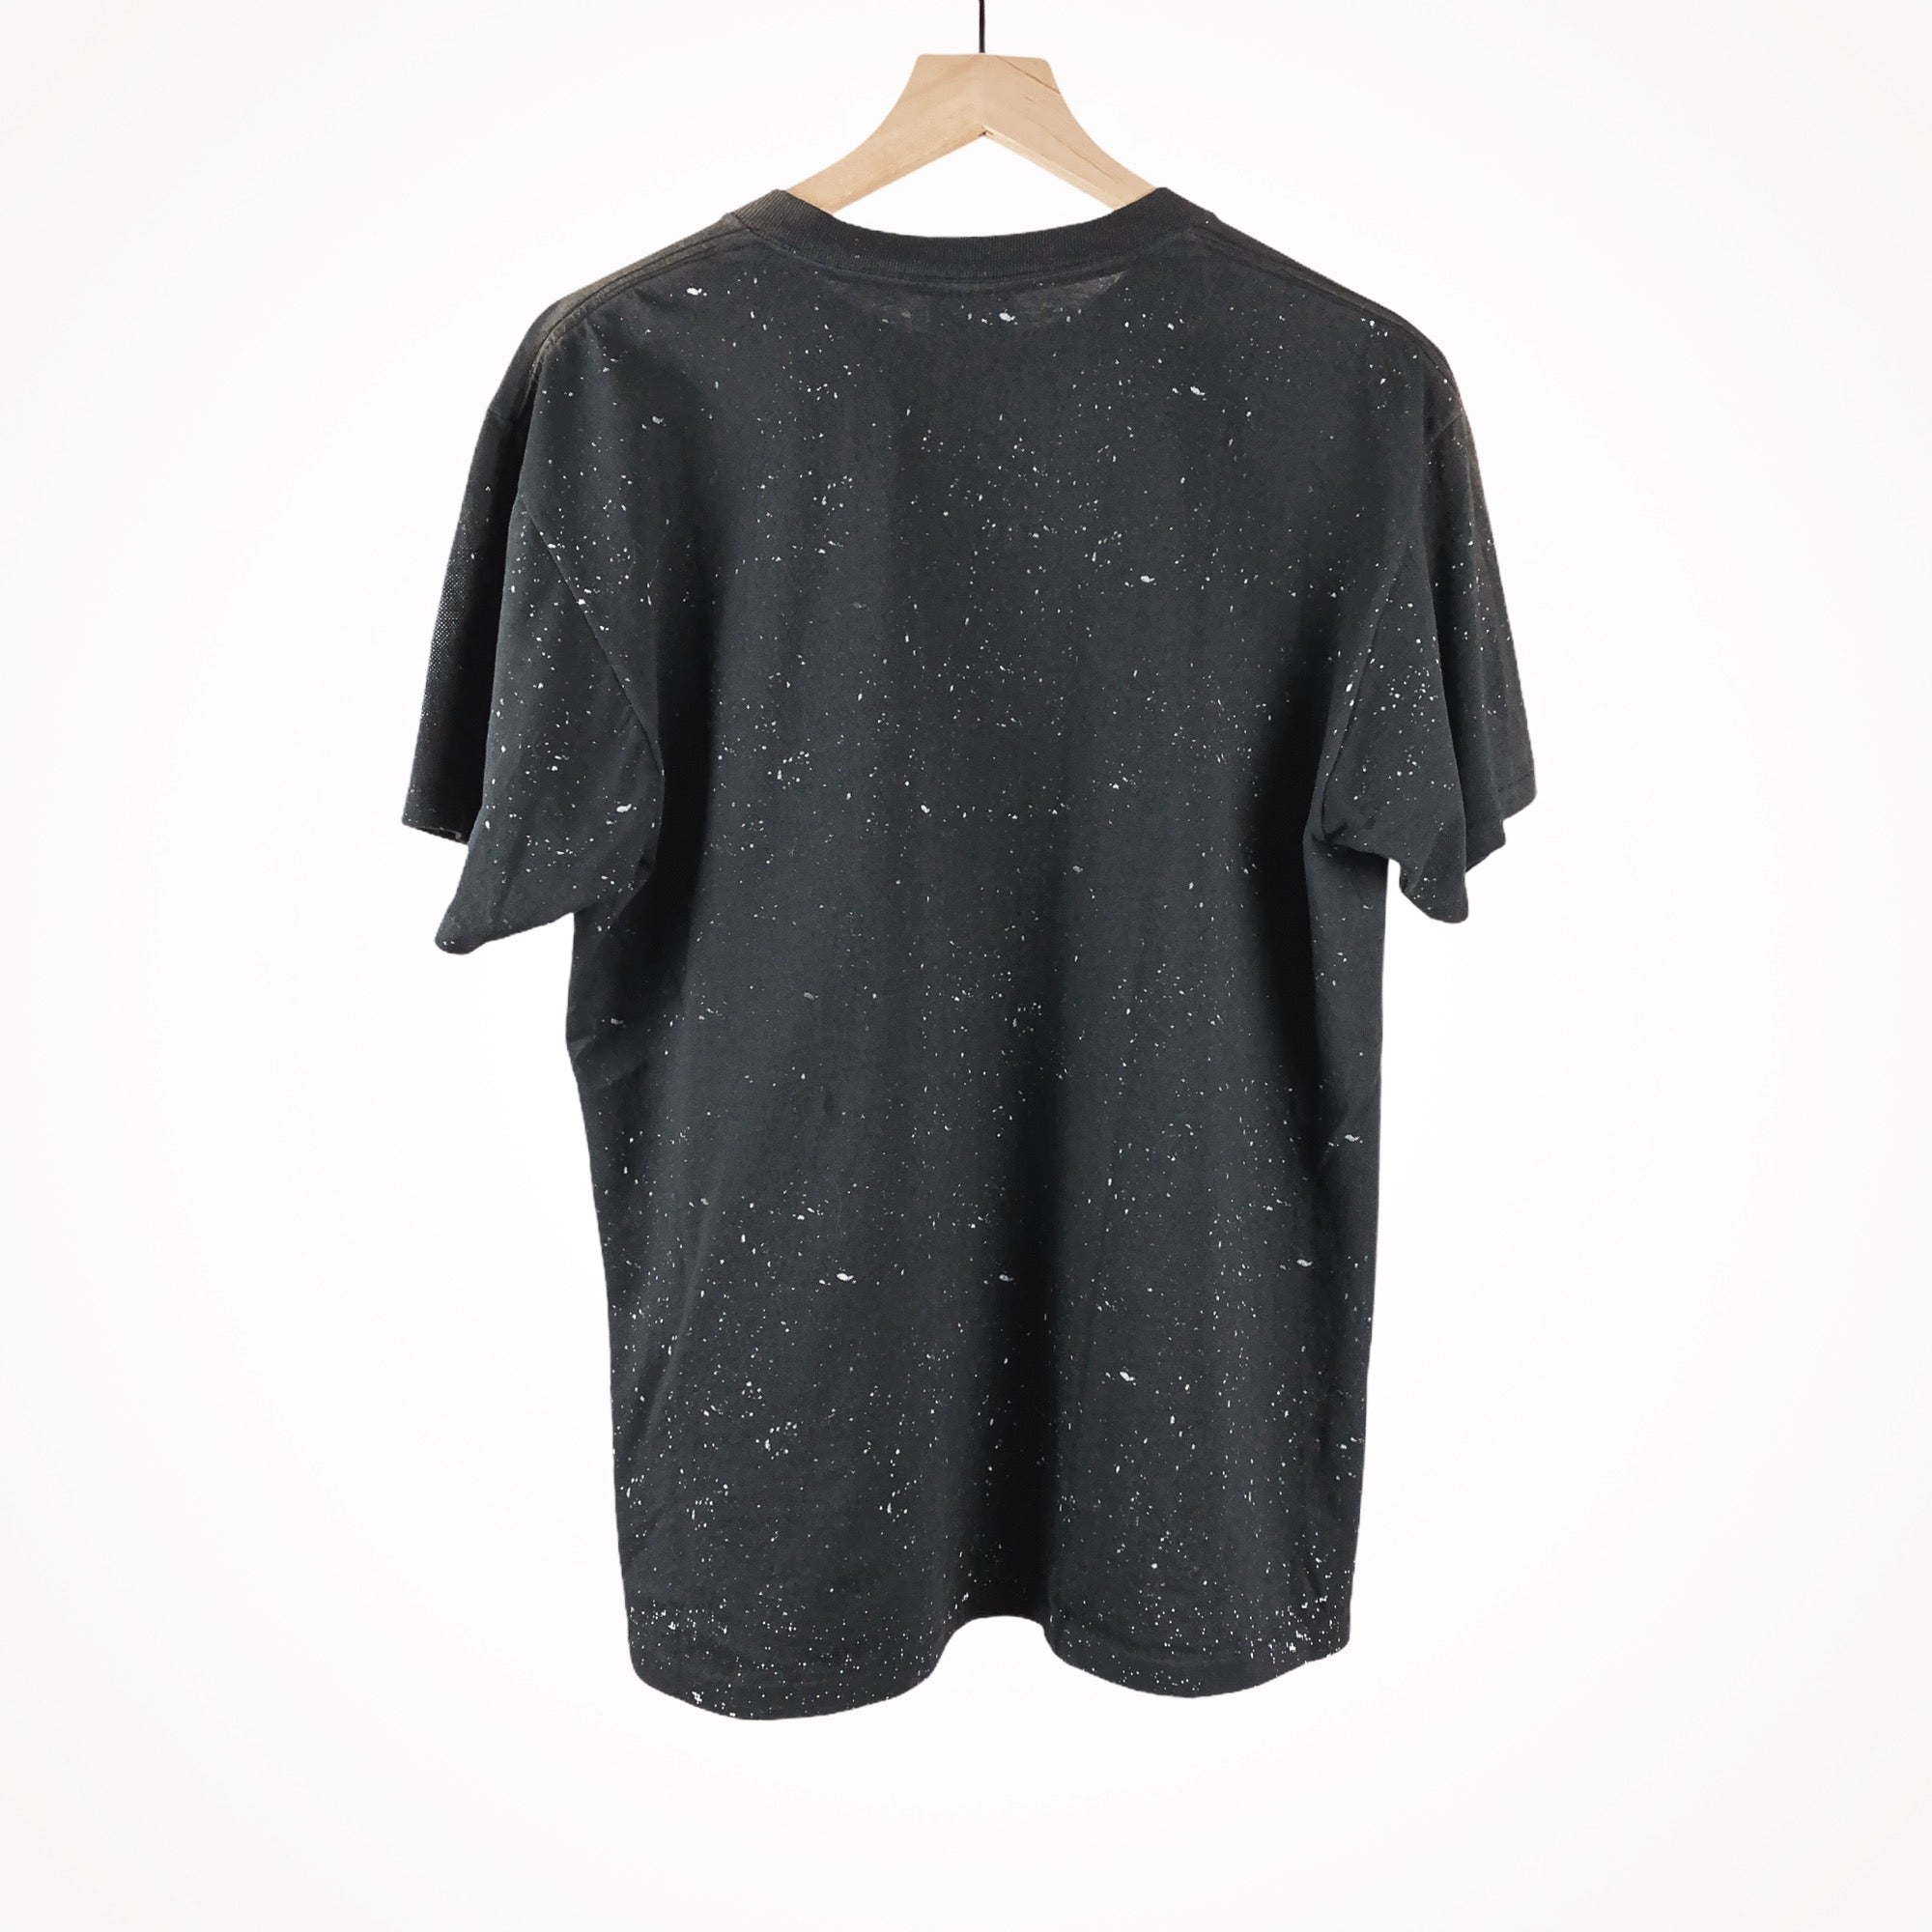 Vintage 1990s 3D Emblem Galaxy Pinup All-Over Print T-Shirt